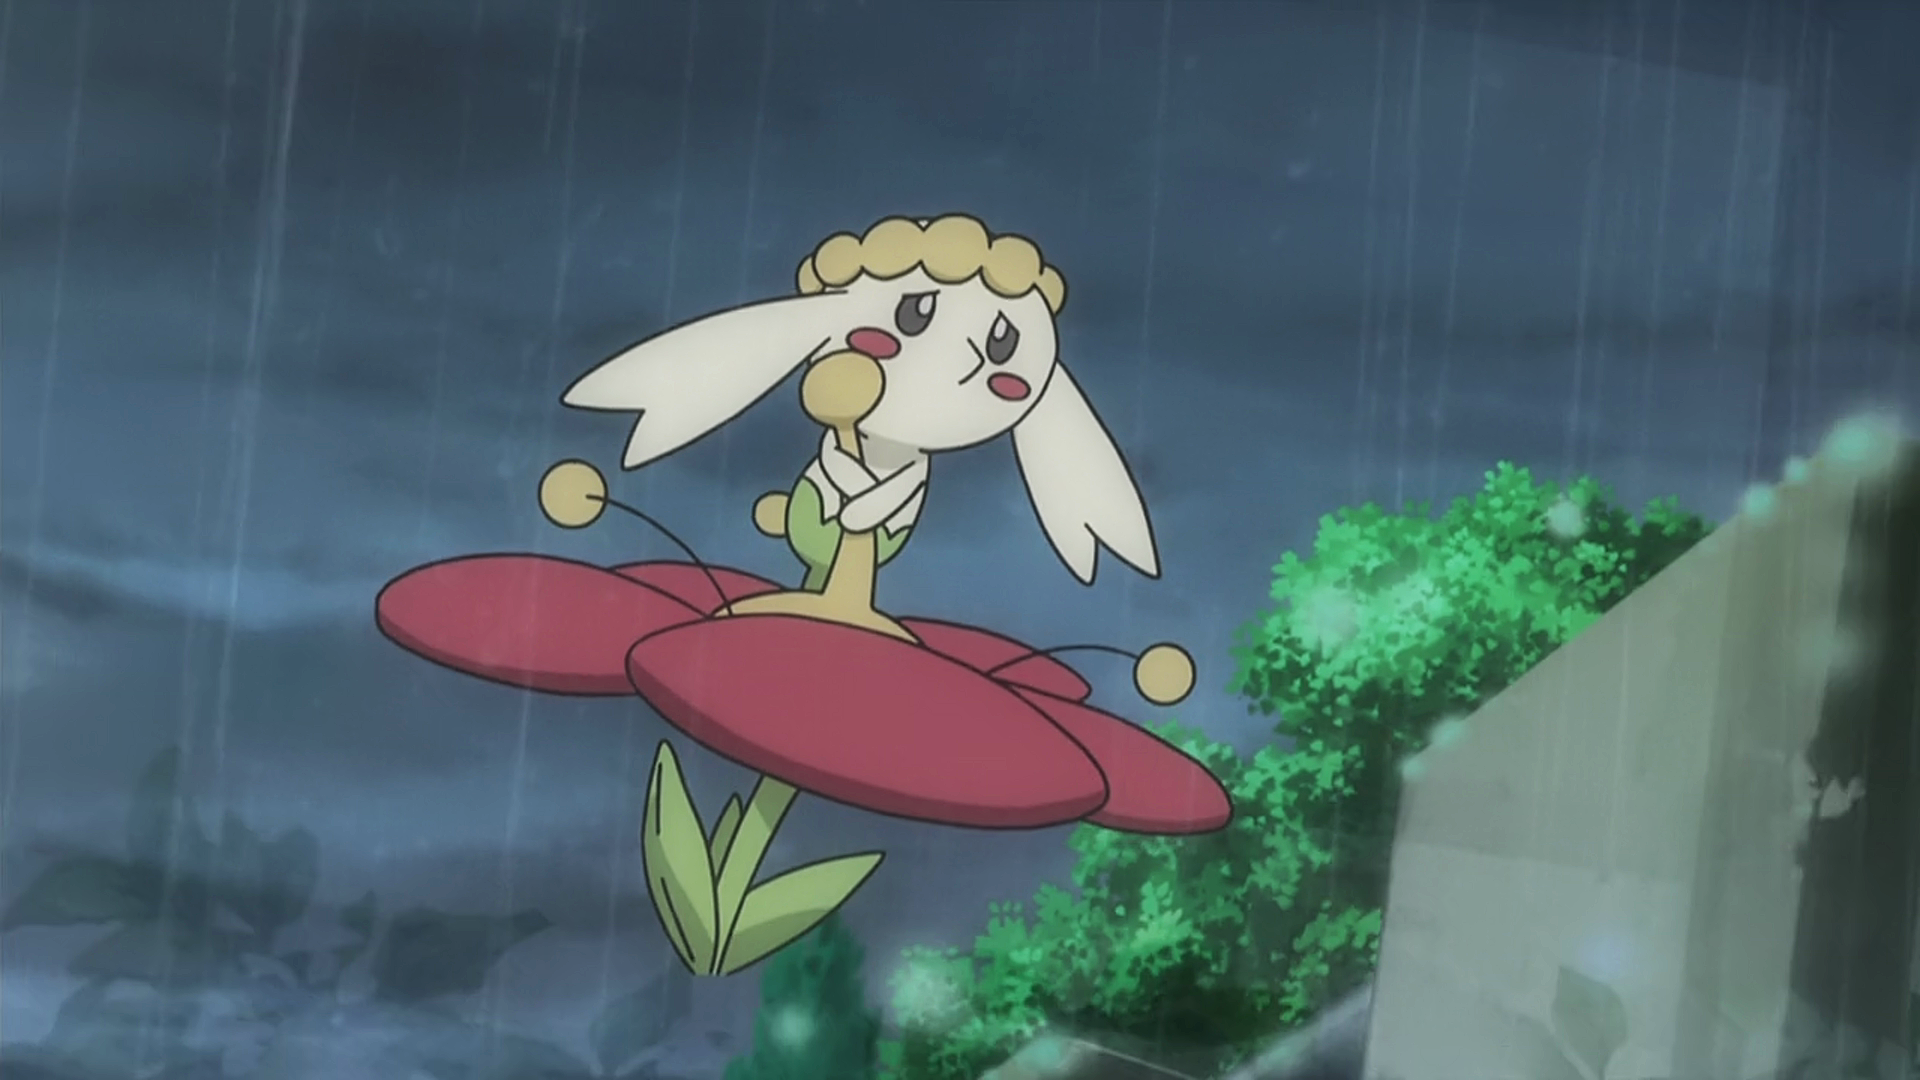 Flabébé was first seen befriended by Bonnie who thinking it was wild, wanted Clemont to catch it only finding it belonged to a Trainer.